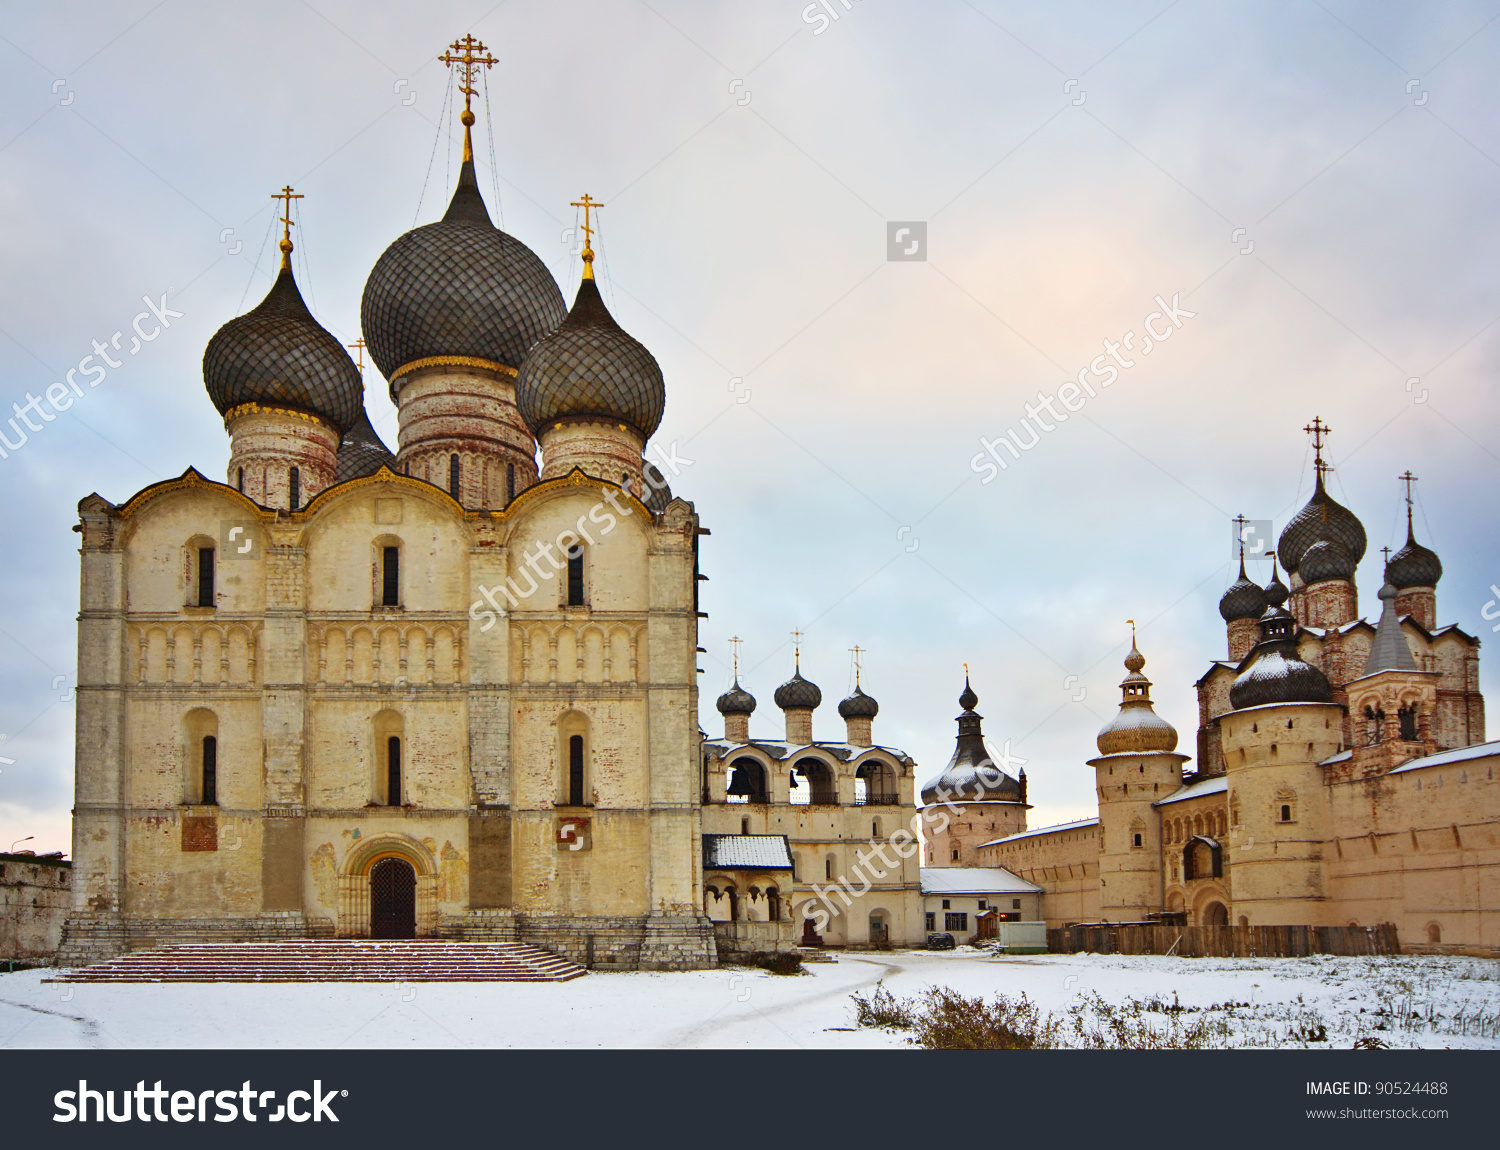 Russian Church Rostov Kremlin Castle Russia Stock Photo 90524488.